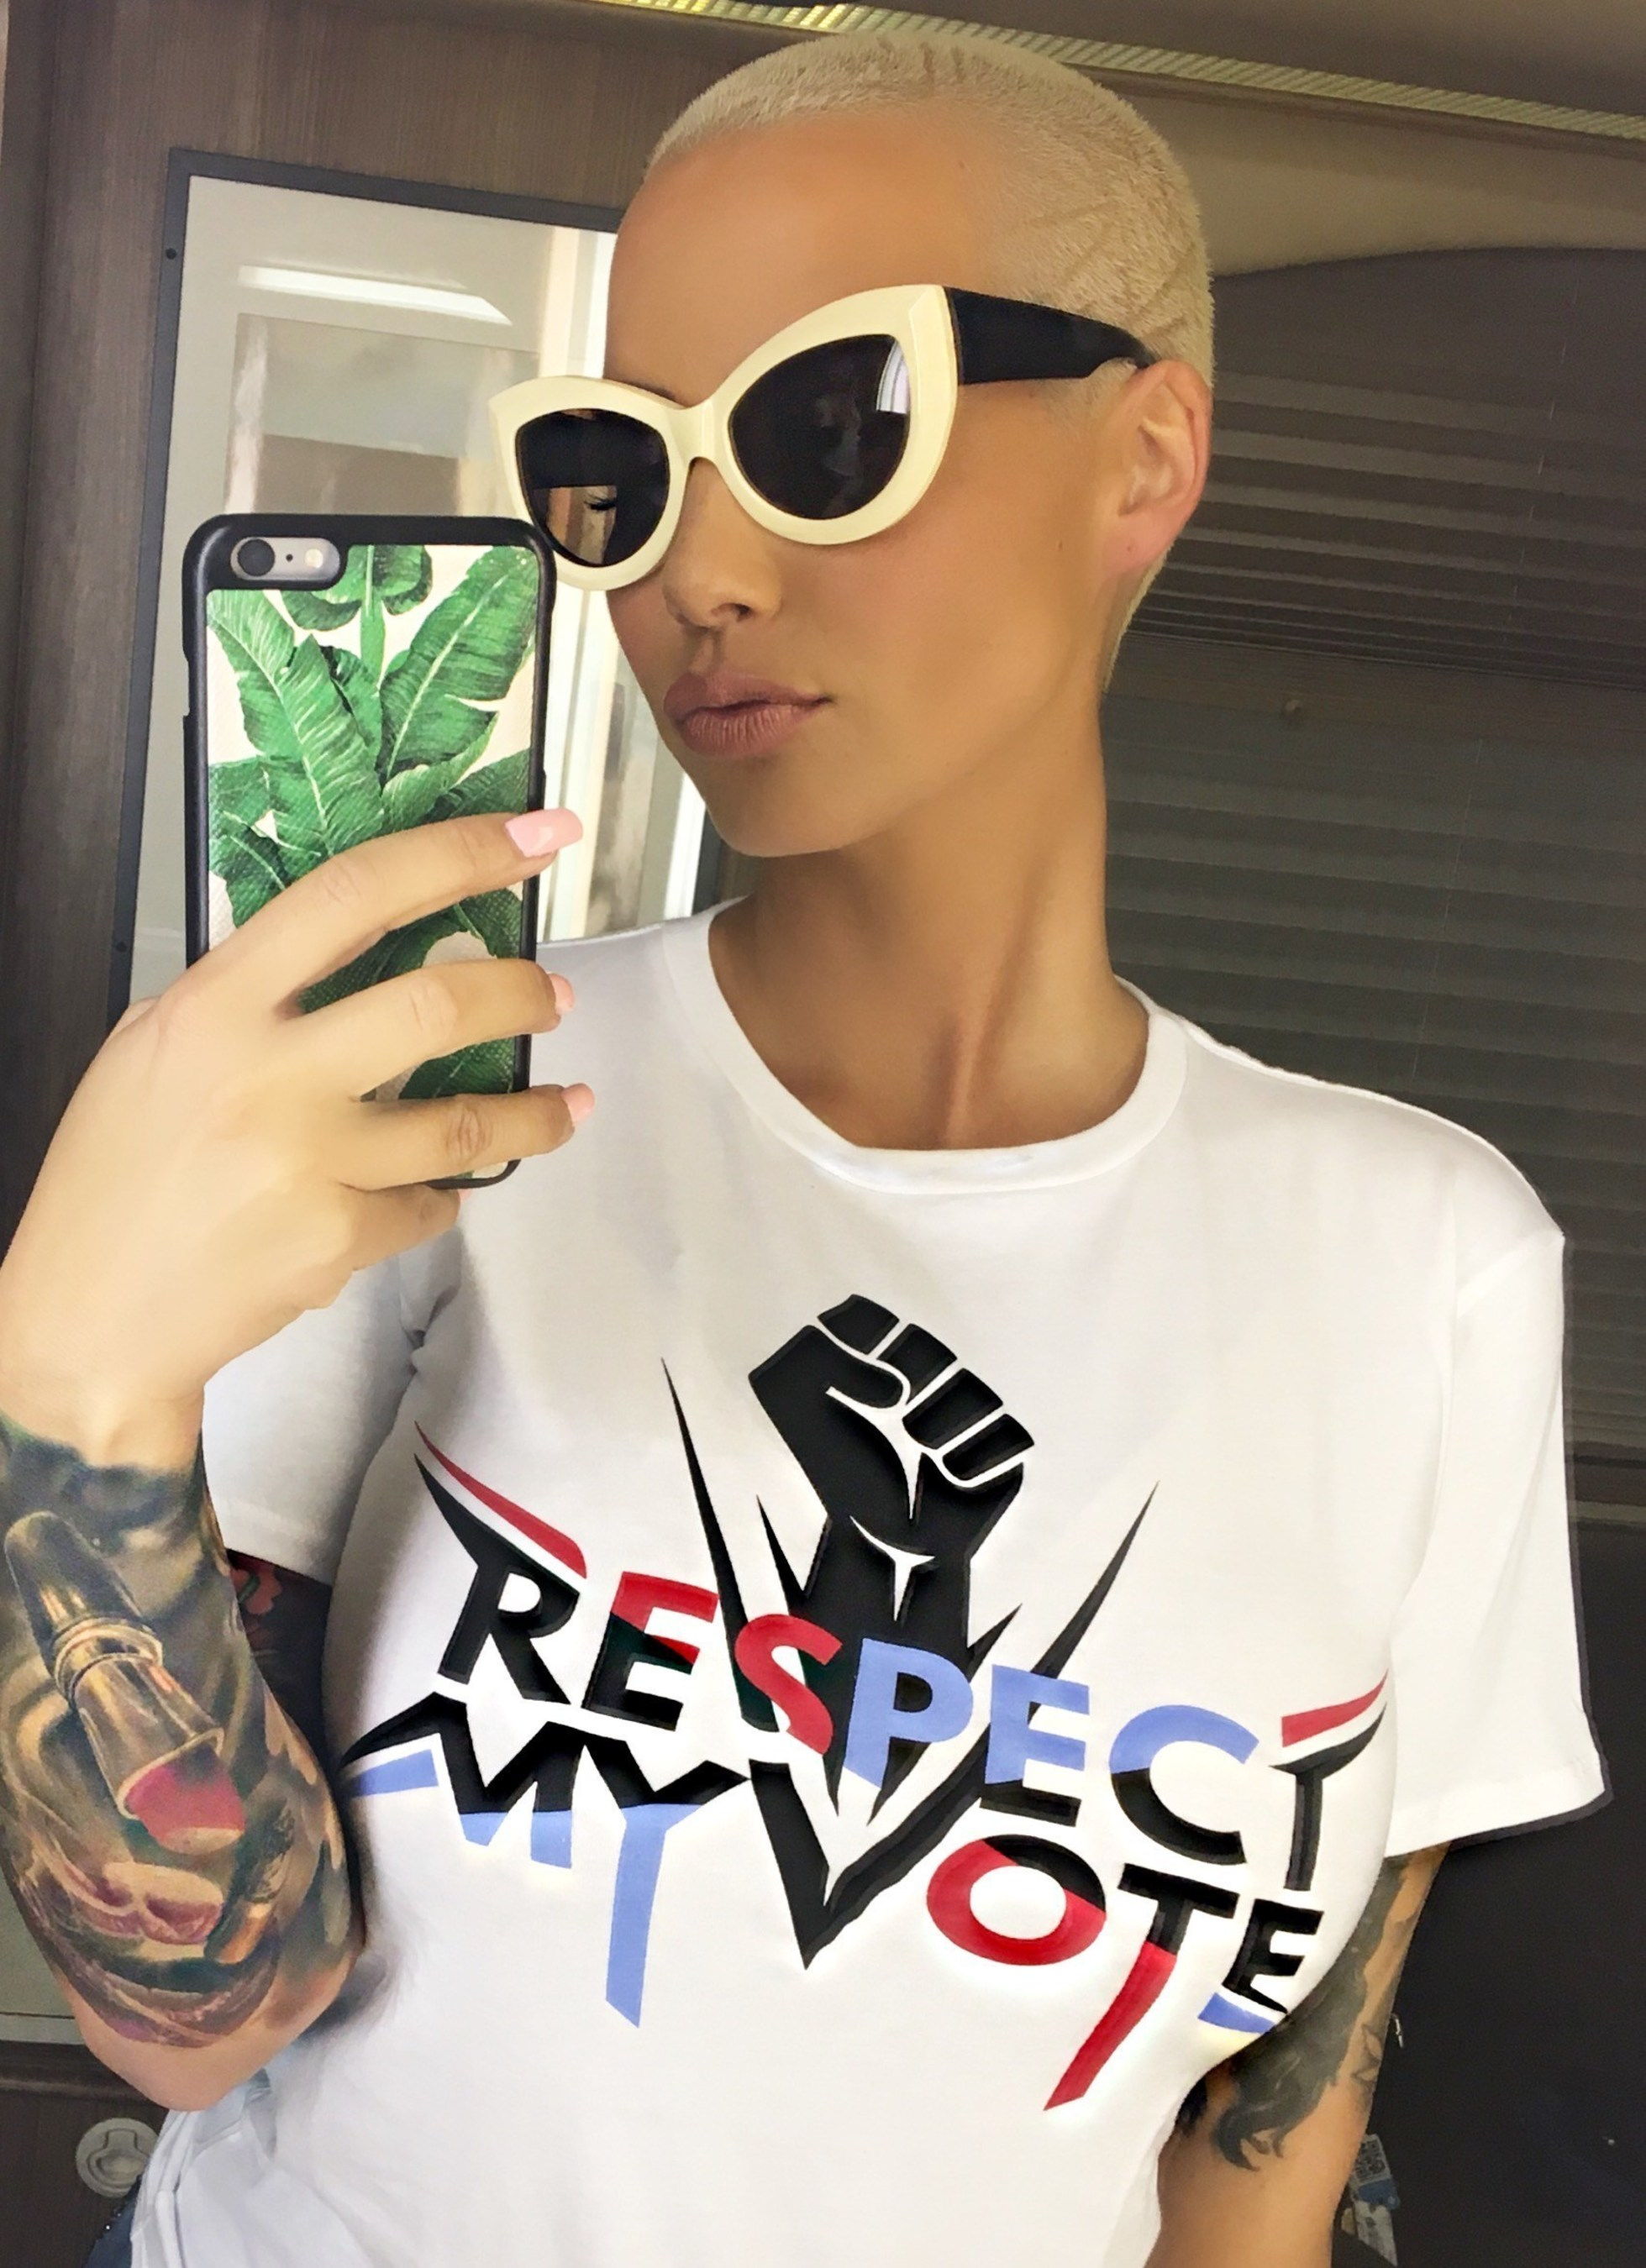 Dancing with the Stars Contestant, Model, Author And Talk Show Host Amber Rose Announced As Spokesperson For Respect My Vote! Campaign